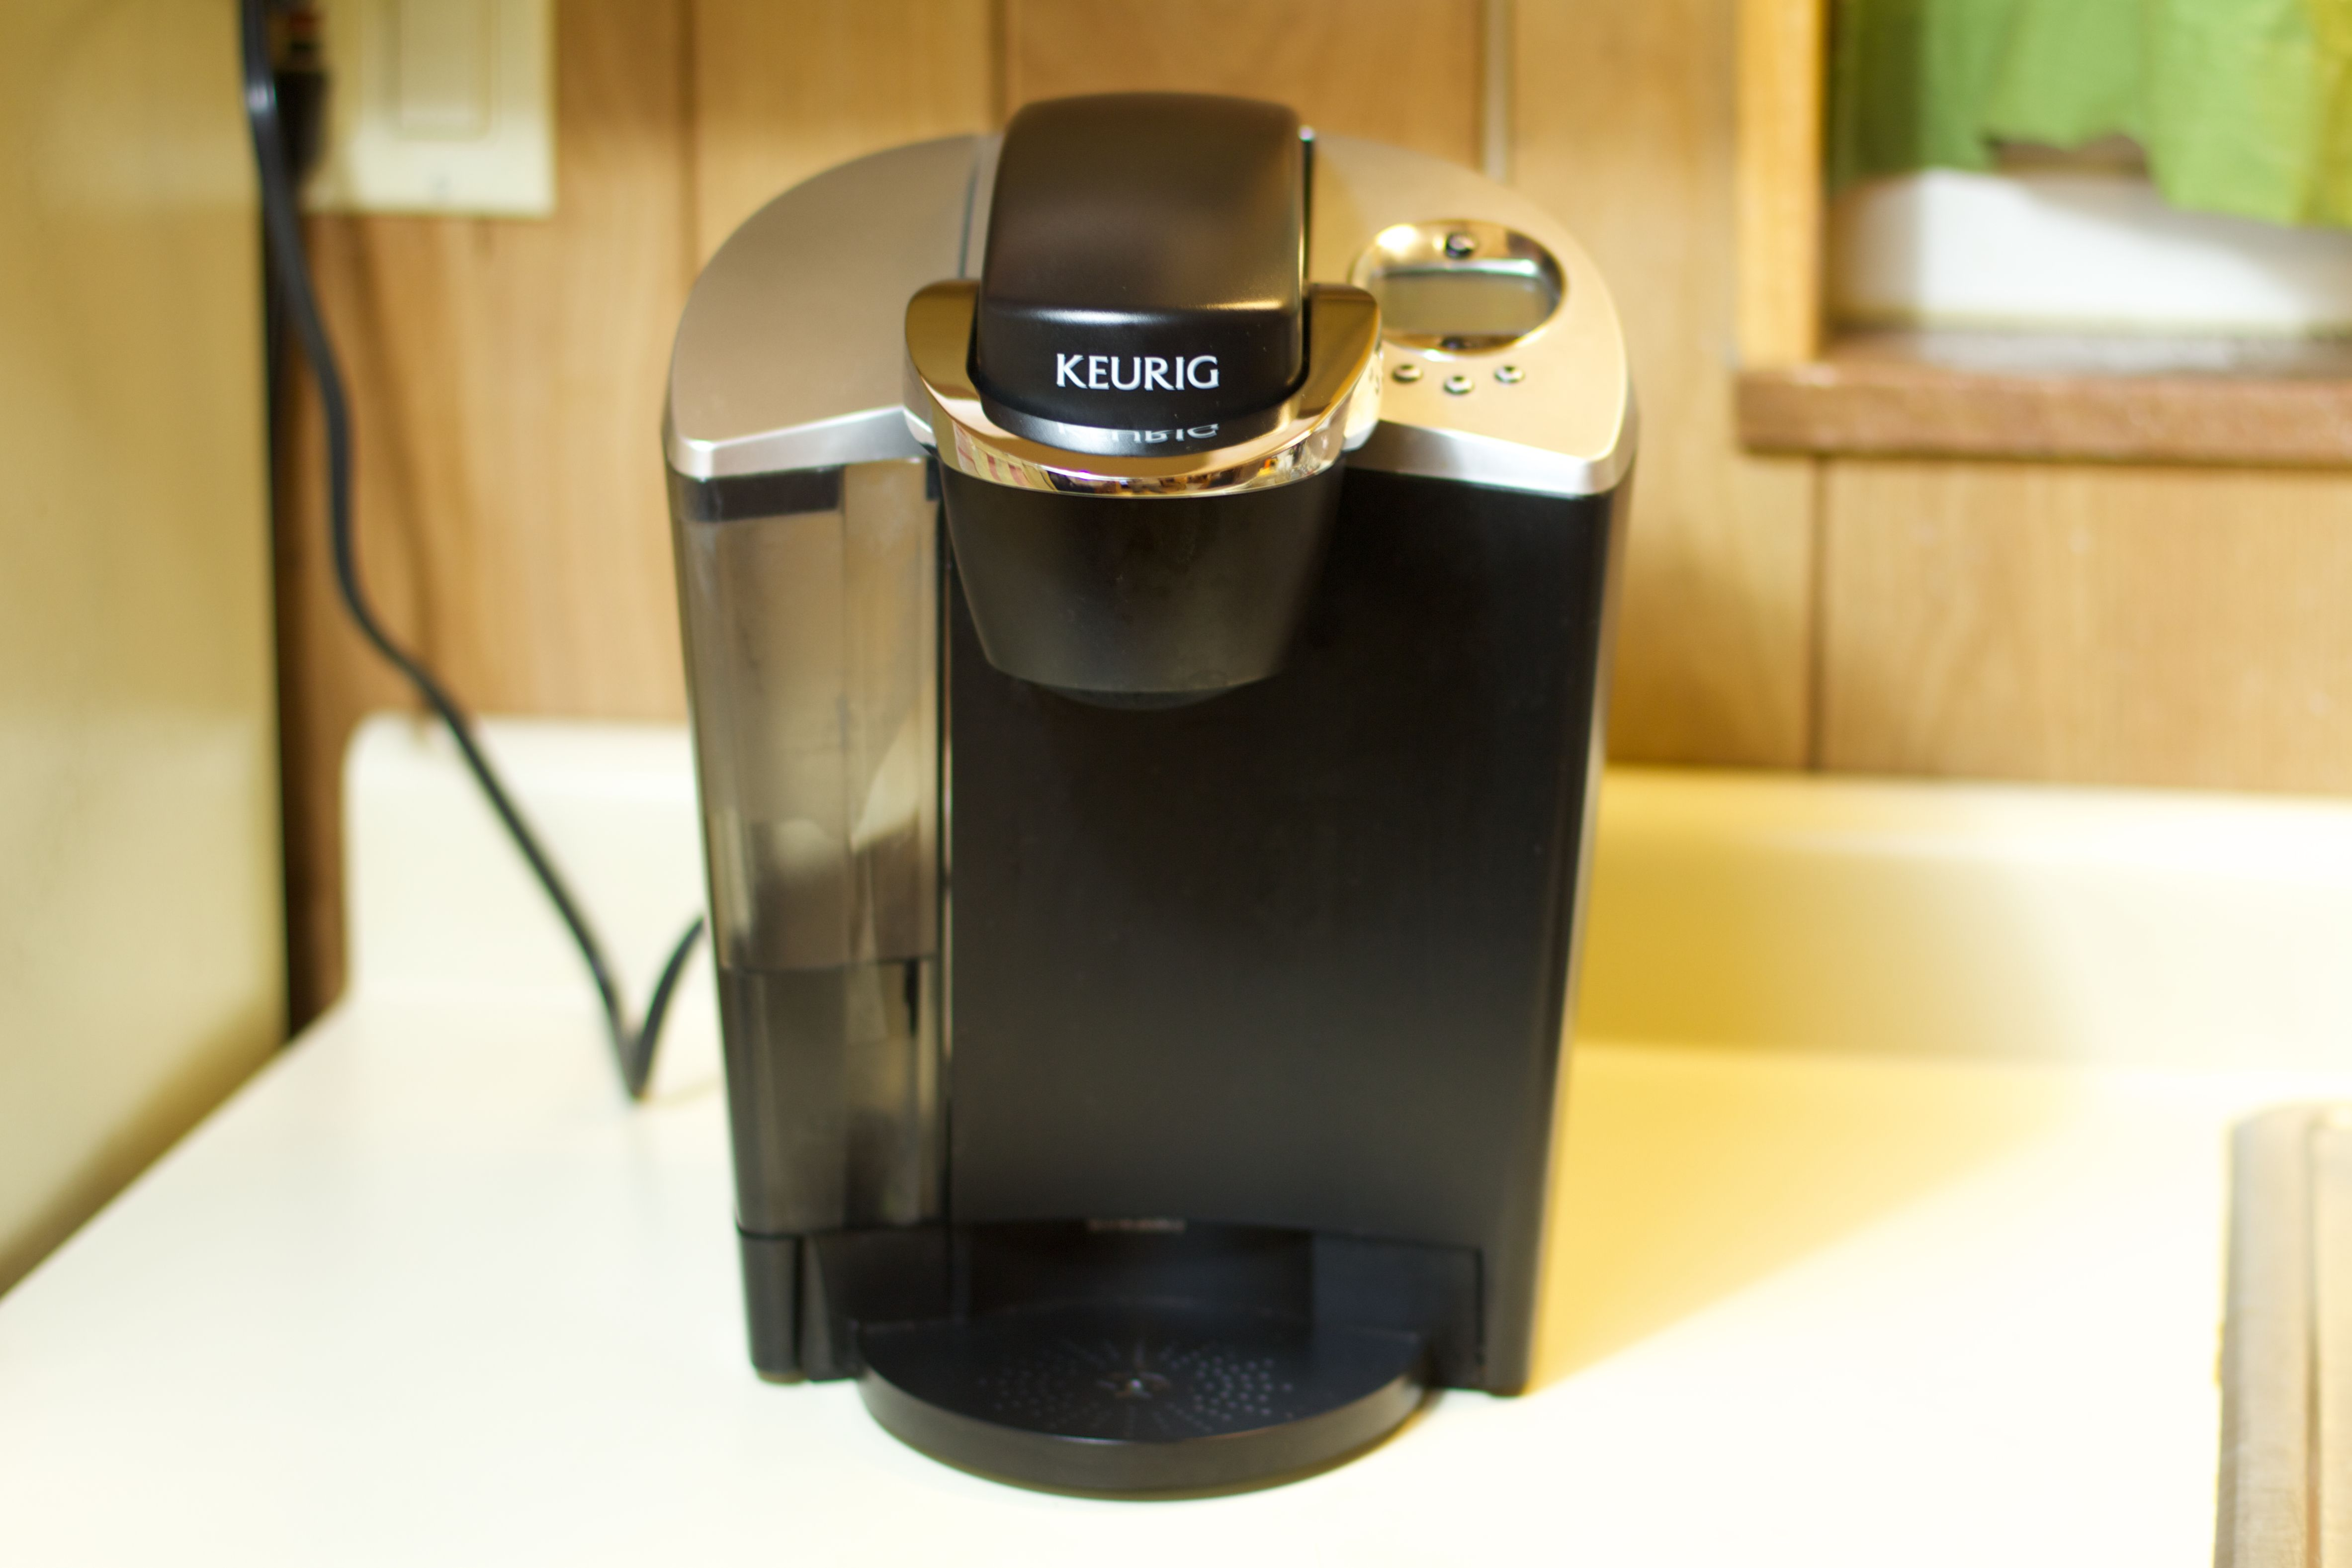 How To Change The Water Filter On A Keurig Coffee Maker Hunker Keurig Cleaning Keurig Coffee Maker